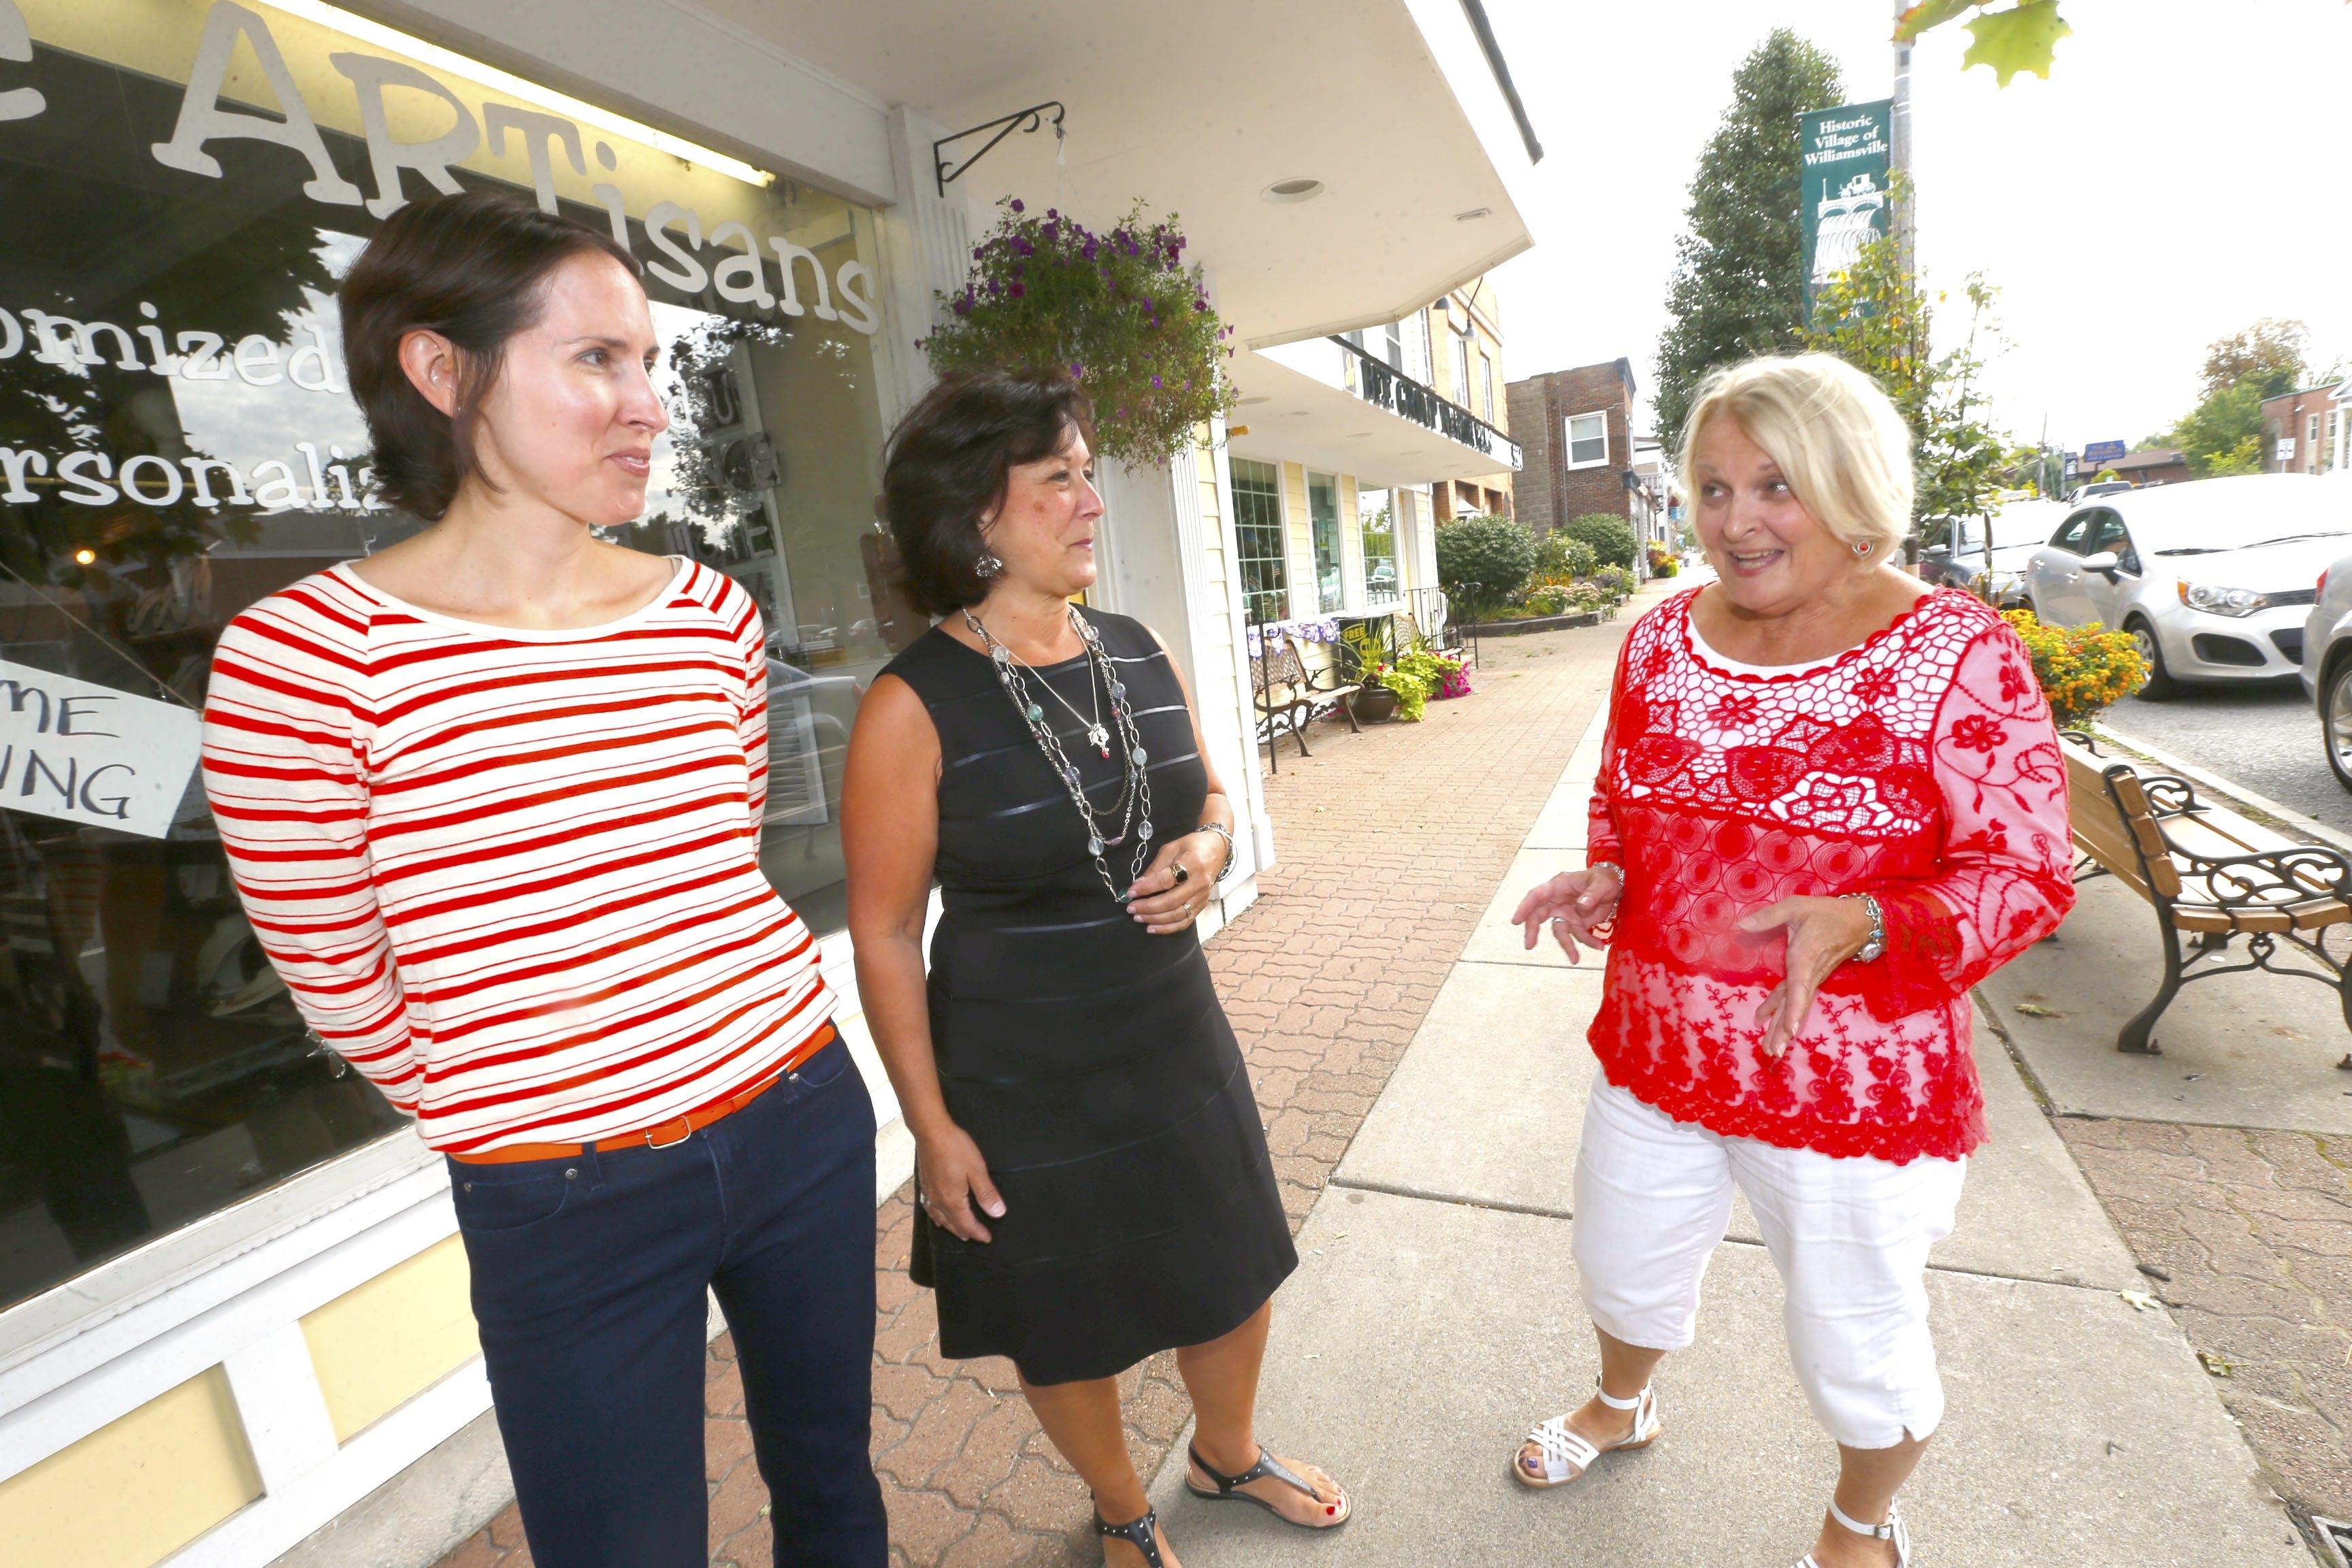 Village of Williamsville residents from left, Deb Rogers, Debbie Steinbruckner and Bea Slick, wouldn't trade village living for anything.  They were on Main St. on Friday, Aug. 29, 2014.  (Robert Kirkham/Buffalo News)